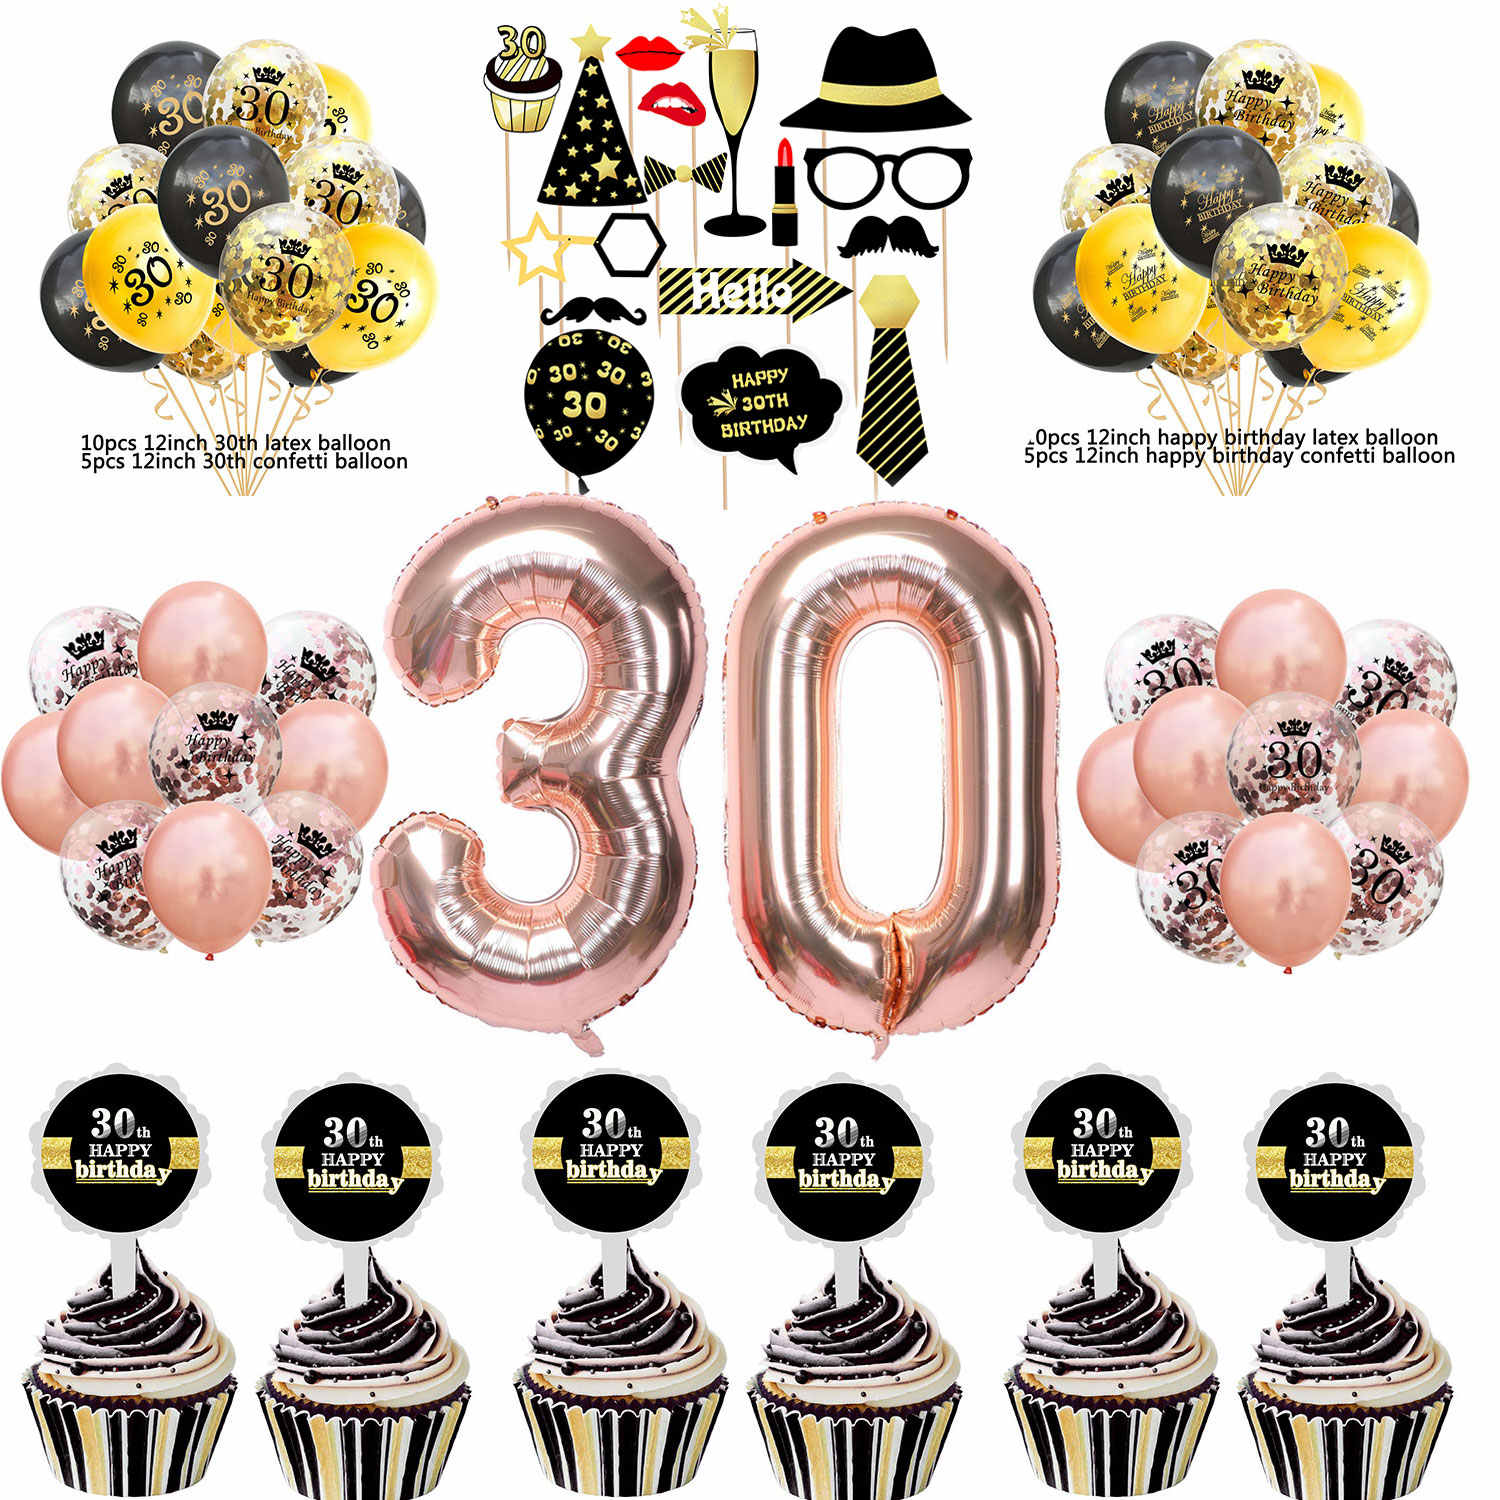 ZLJQ 30th Birthday Party Photo Booth Props Kit 32inch Rose Gold 30 Number Confetti Balloon